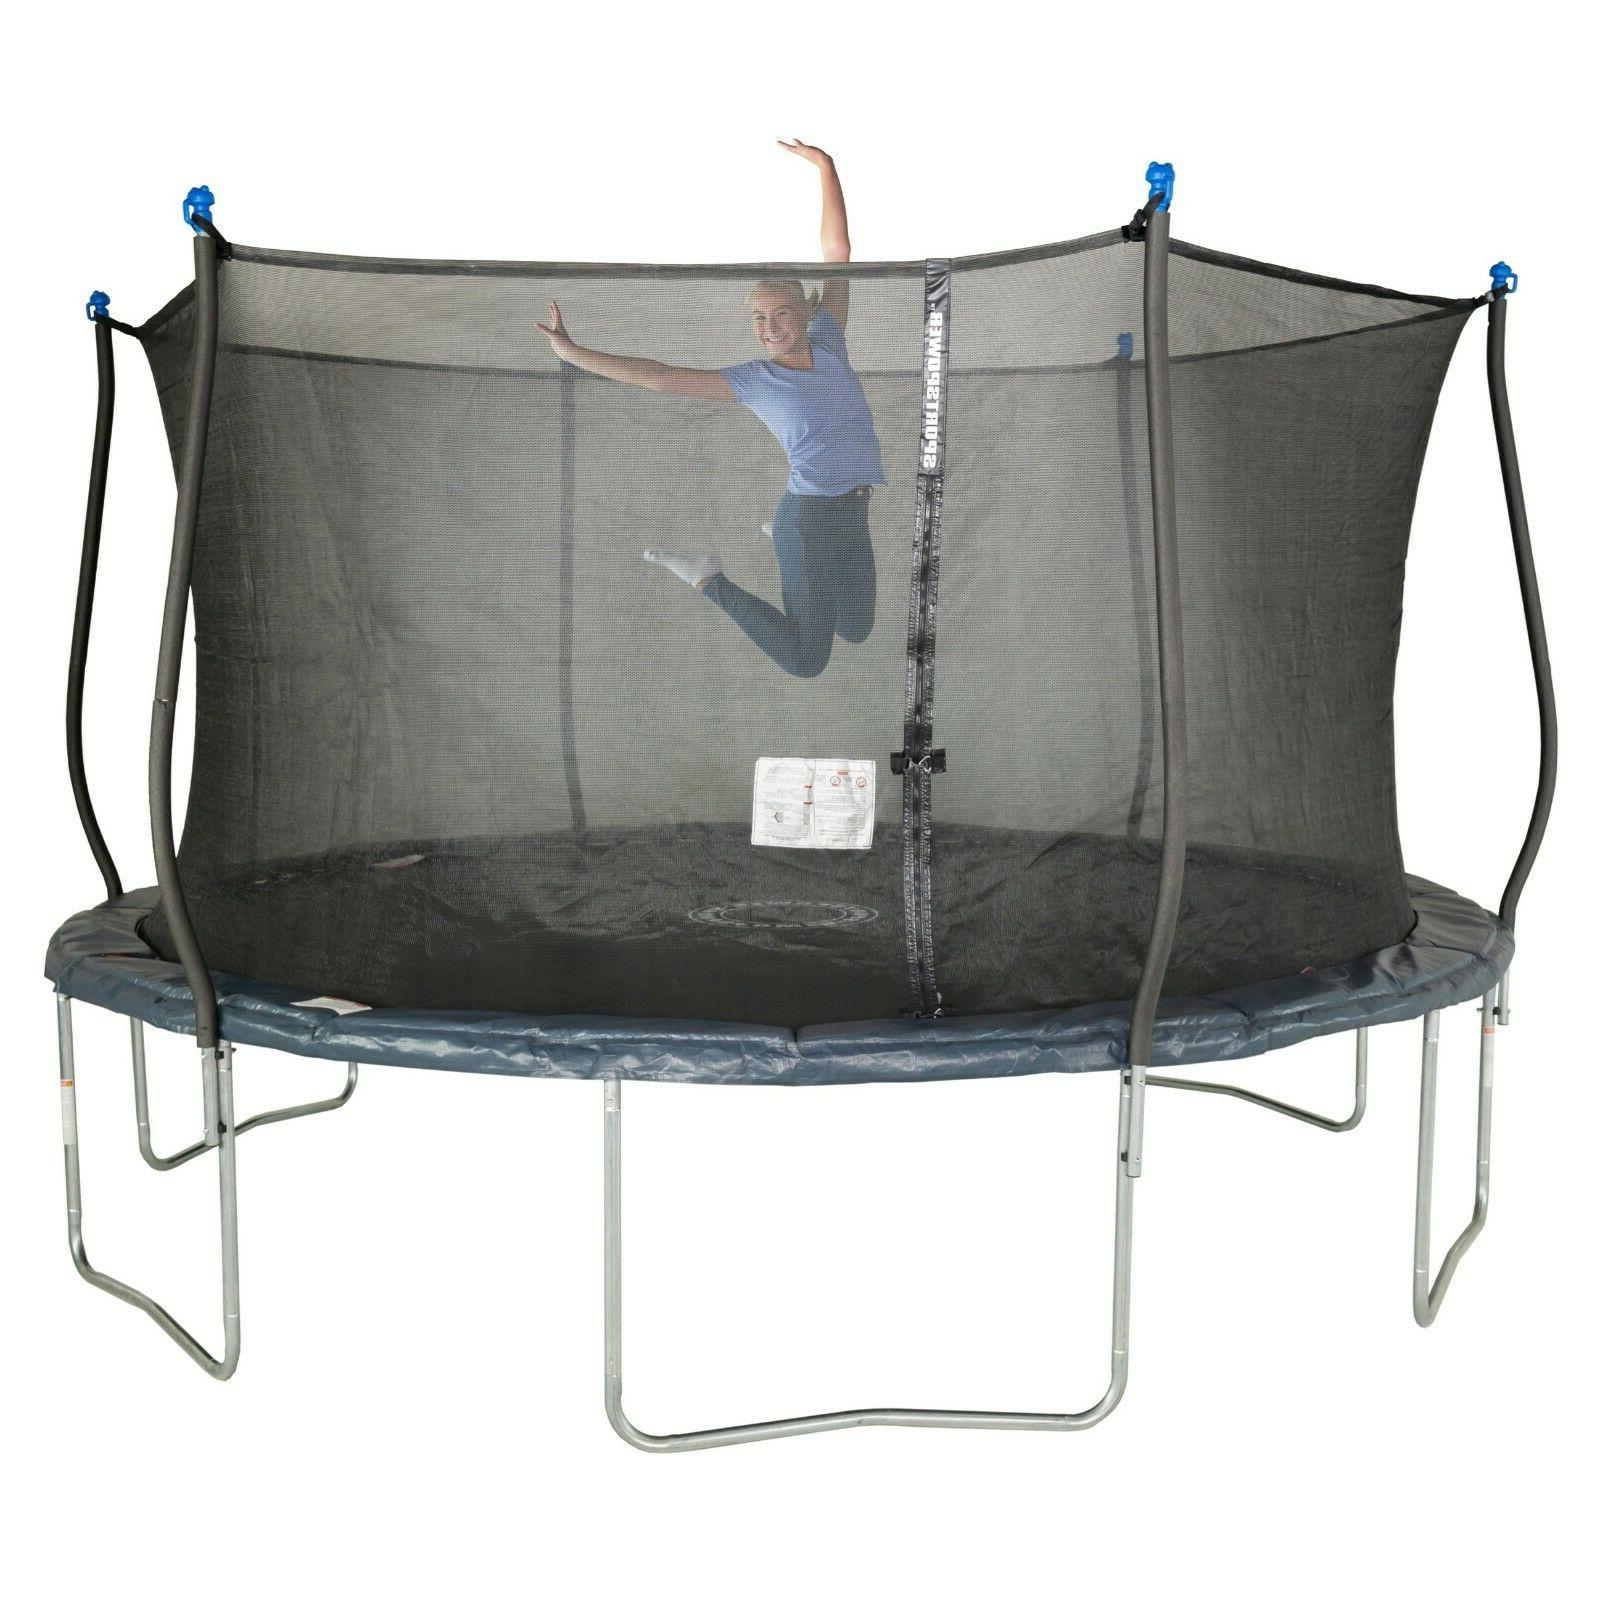 Bounce Pro 14 Enclosure and Safety Jump Mat